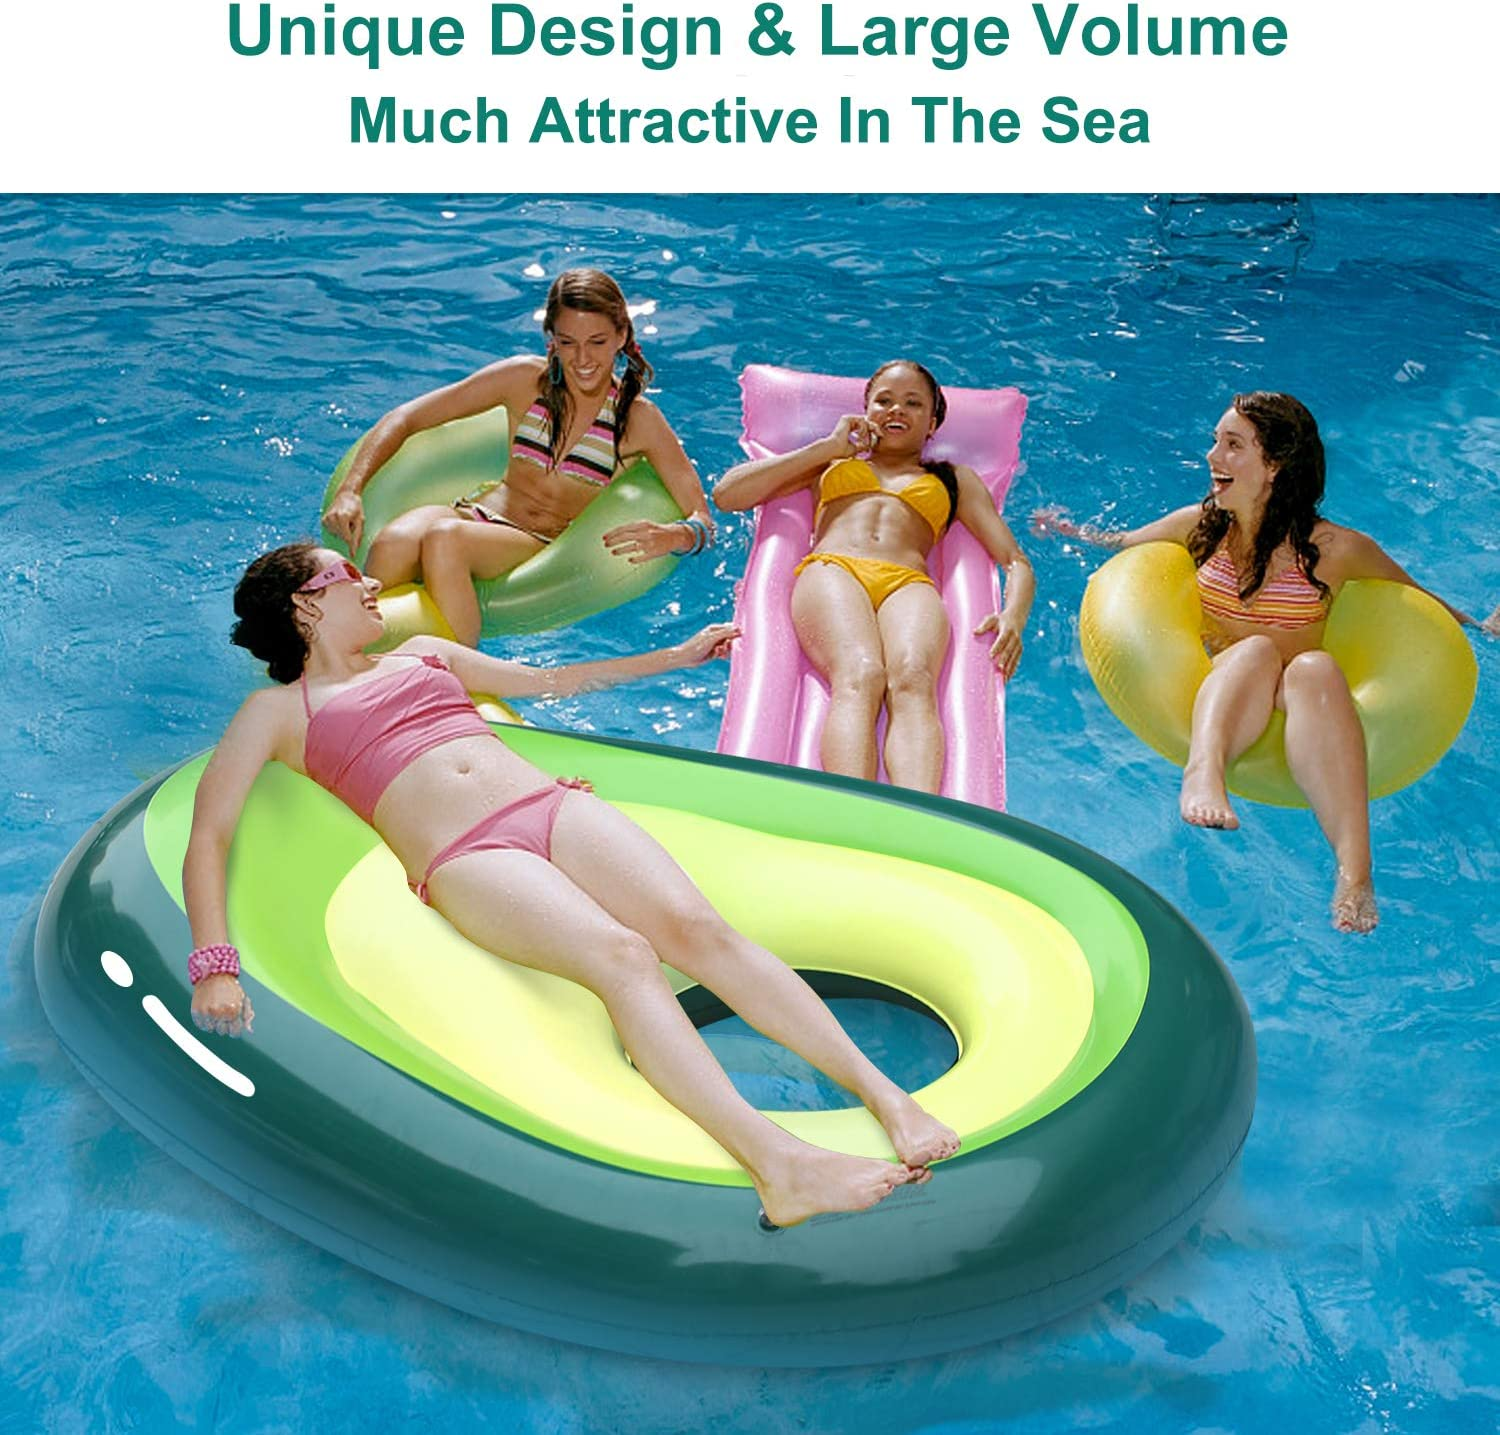 Tobeape Giant Inflatable Avocado Pool Float Floatie, Outdoor Water Lounge, Beach Swimming Floaty Party Toys for Adults Kids